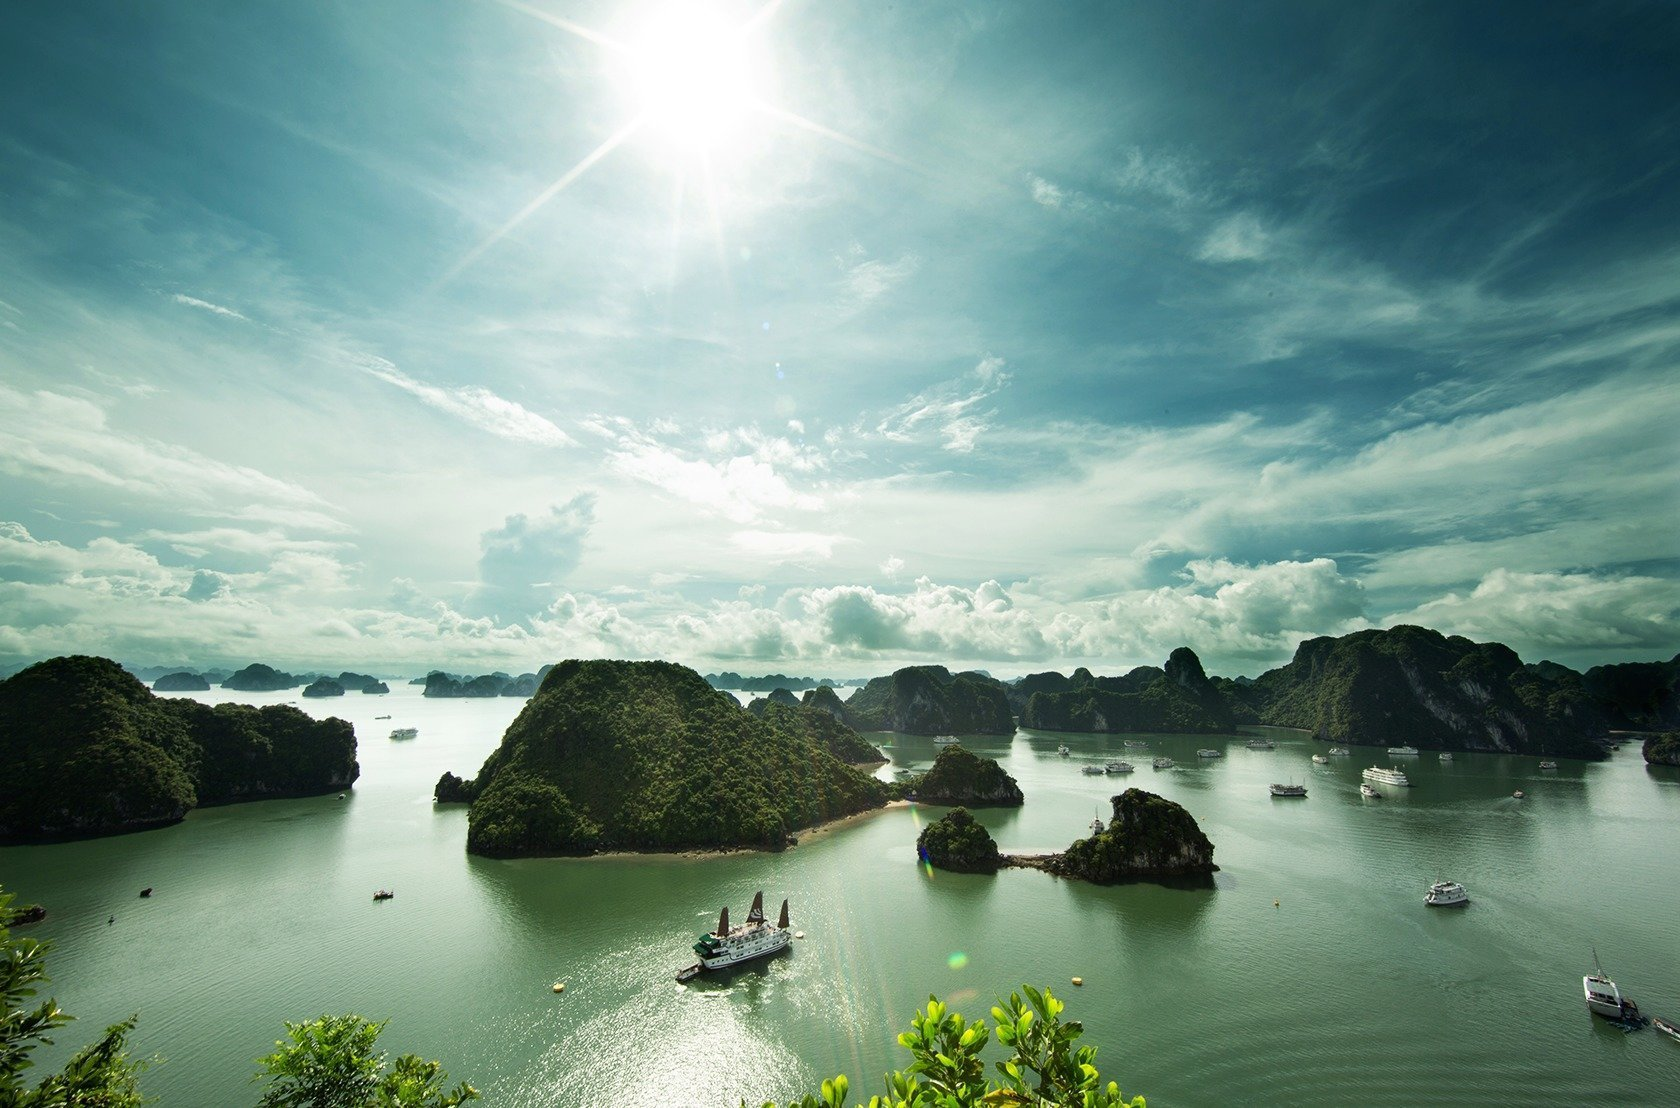 10-Day Vietnam Grand Prix & North to South Sightseeing - Vietnam Itinerary